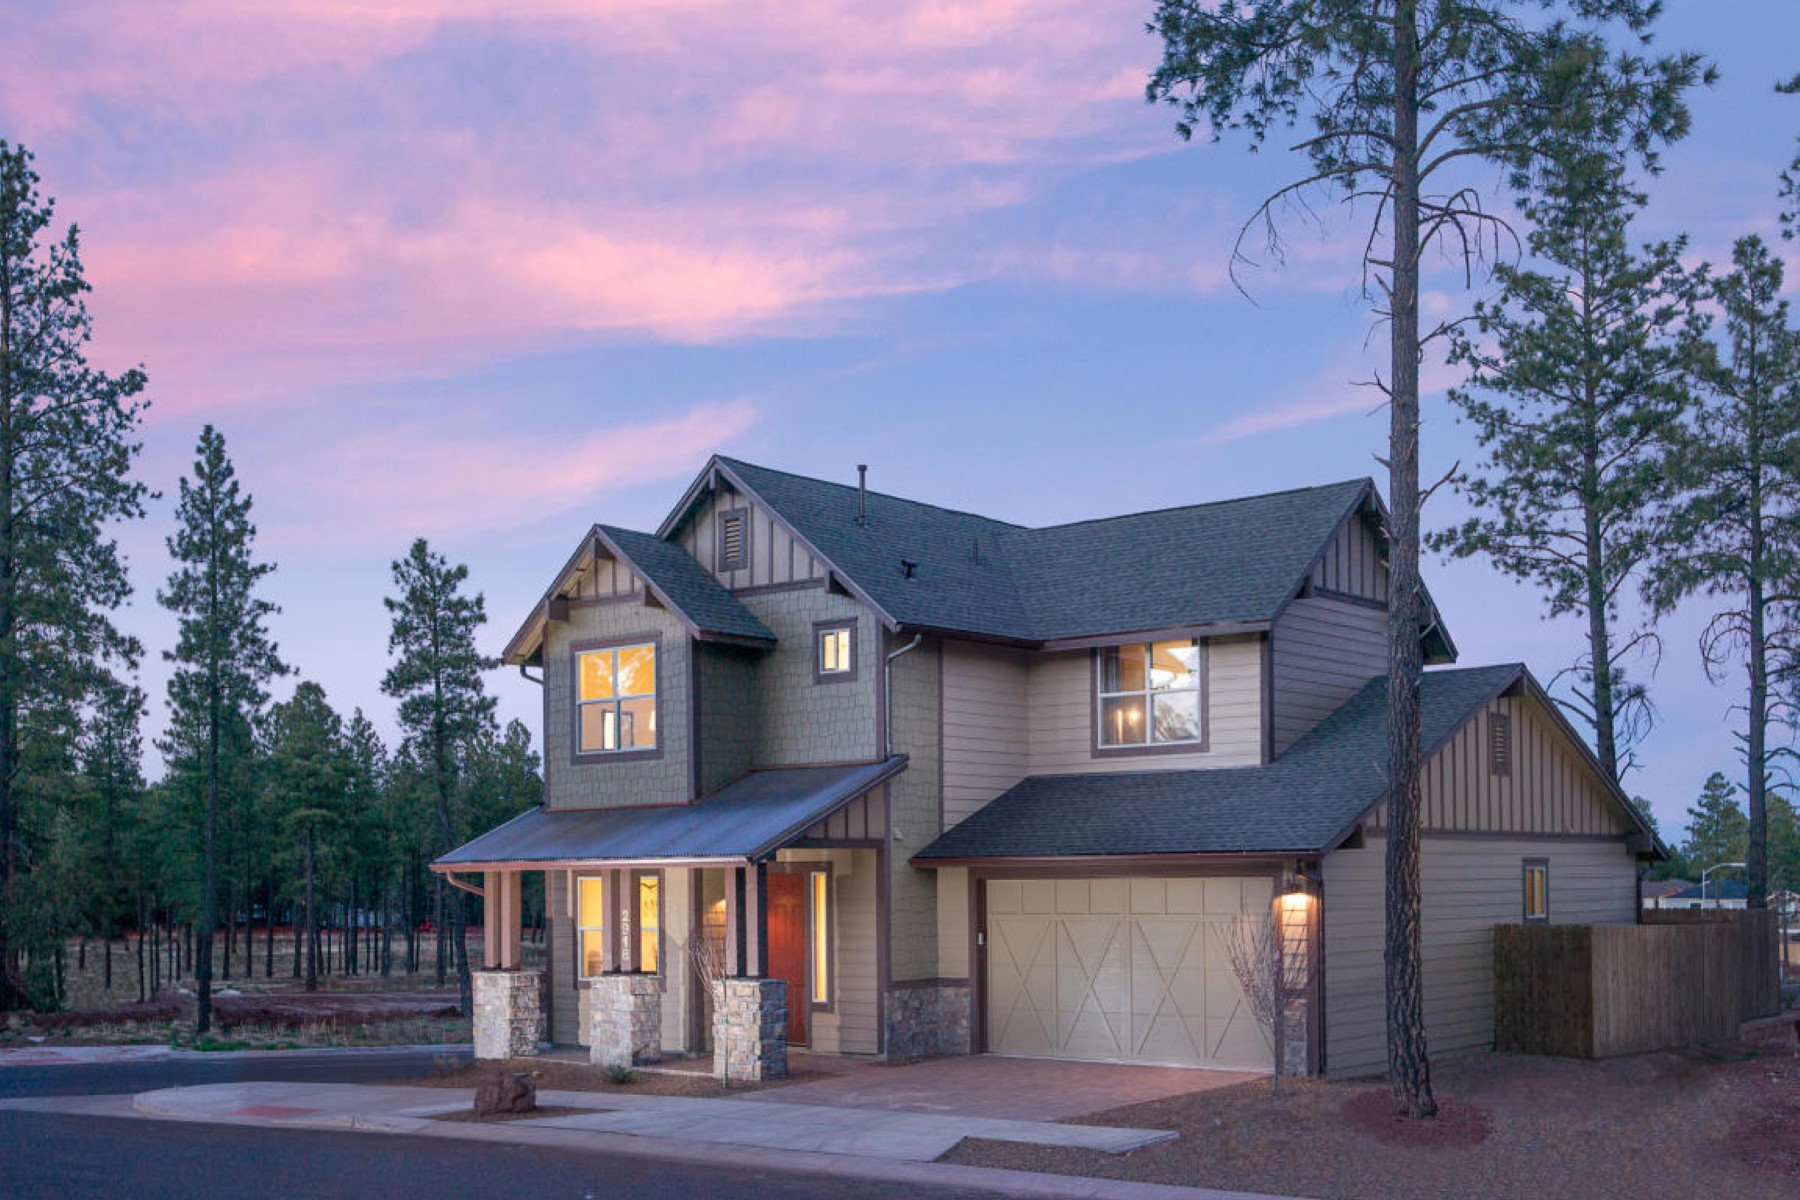 Casa para uma família para Venda às Quality construction to be built by Miramonte Homes 2856 W Pico Del Monte Lot 11B CIR Flagstaff, Arizona 86001 Estados Unidos